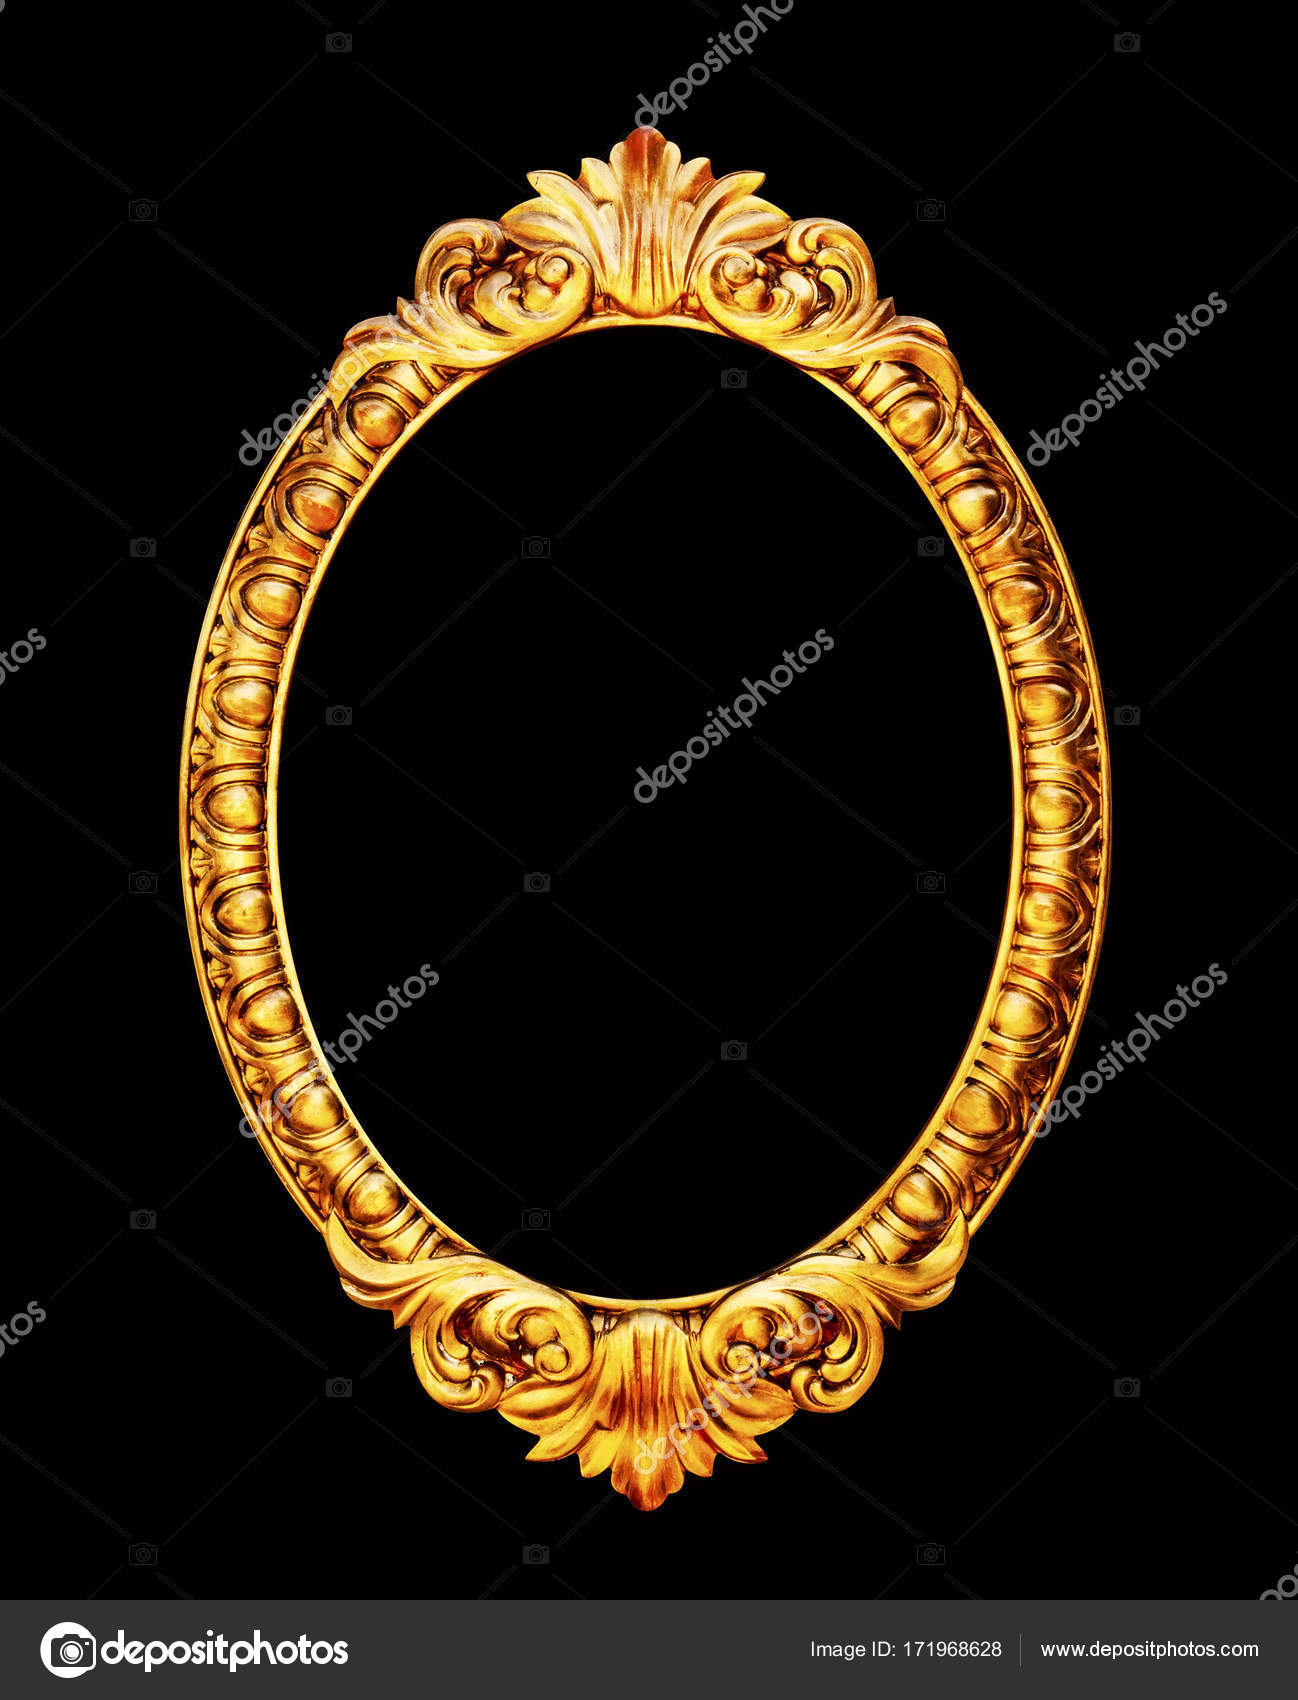 oval mirror frame. oval mirror frame photo isolated on black background \u2014 stock